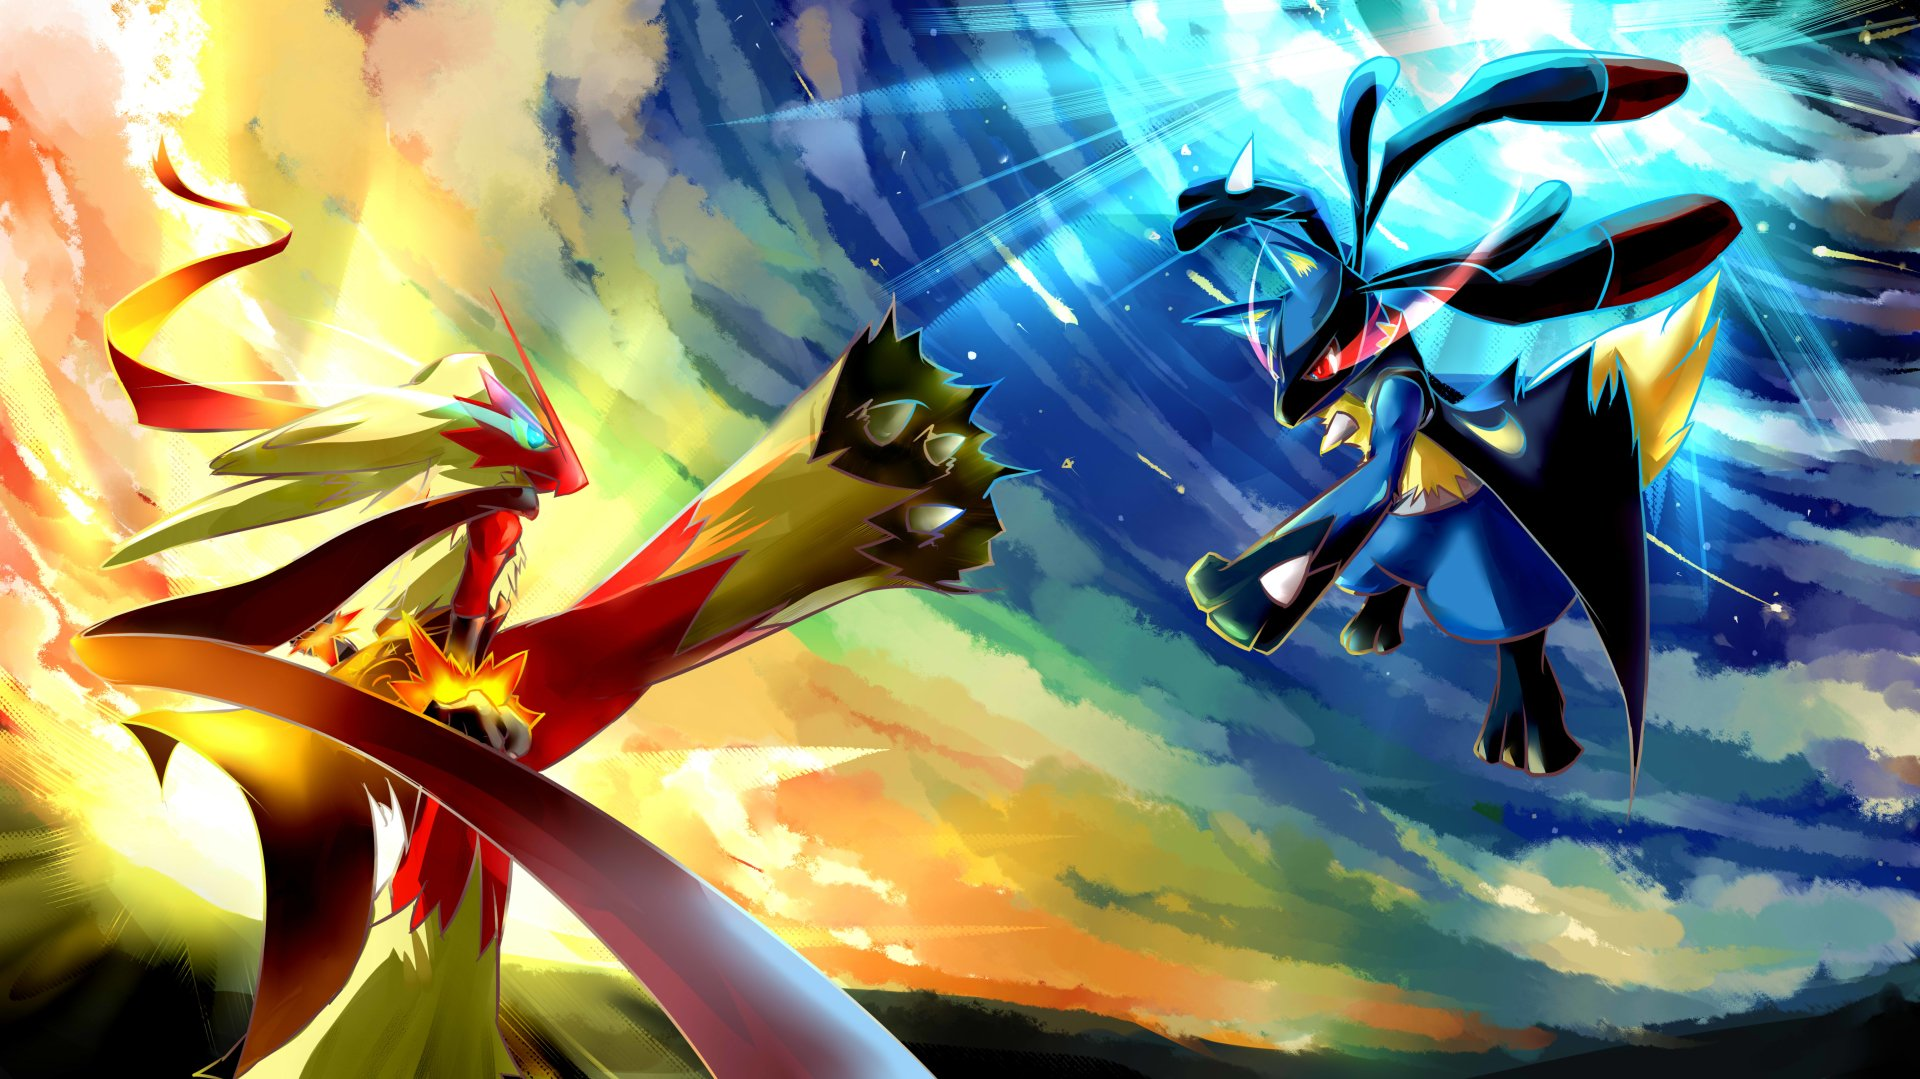 Anime - Pokemon  Blaziken (Pokémon) Lucario (Pokémon) Pokémon Pokemon Battle Wallpaper